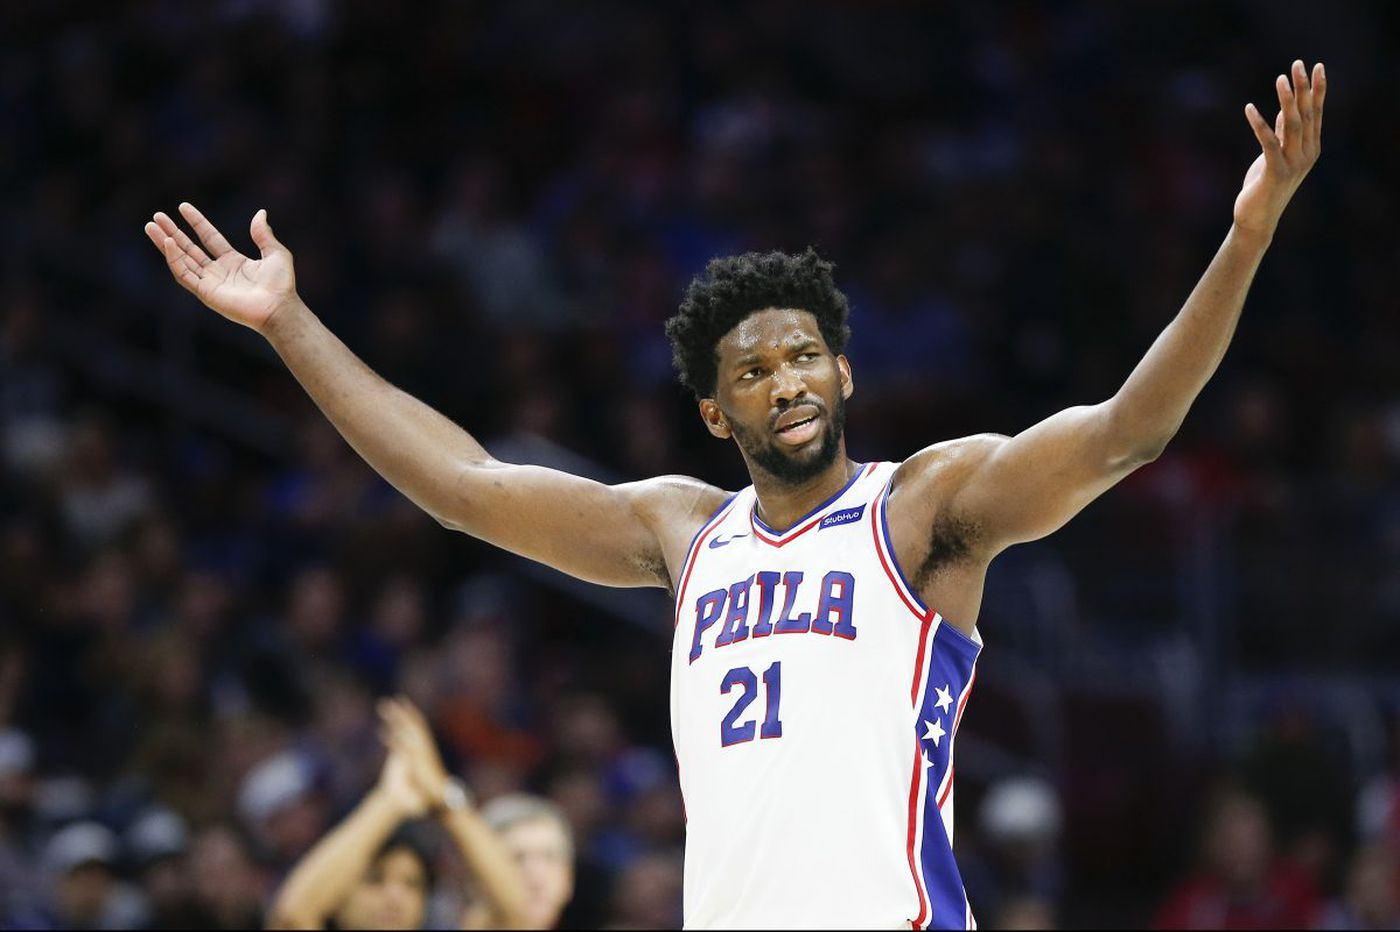 Sixers look to win 10th straight at Wells Fargo Center